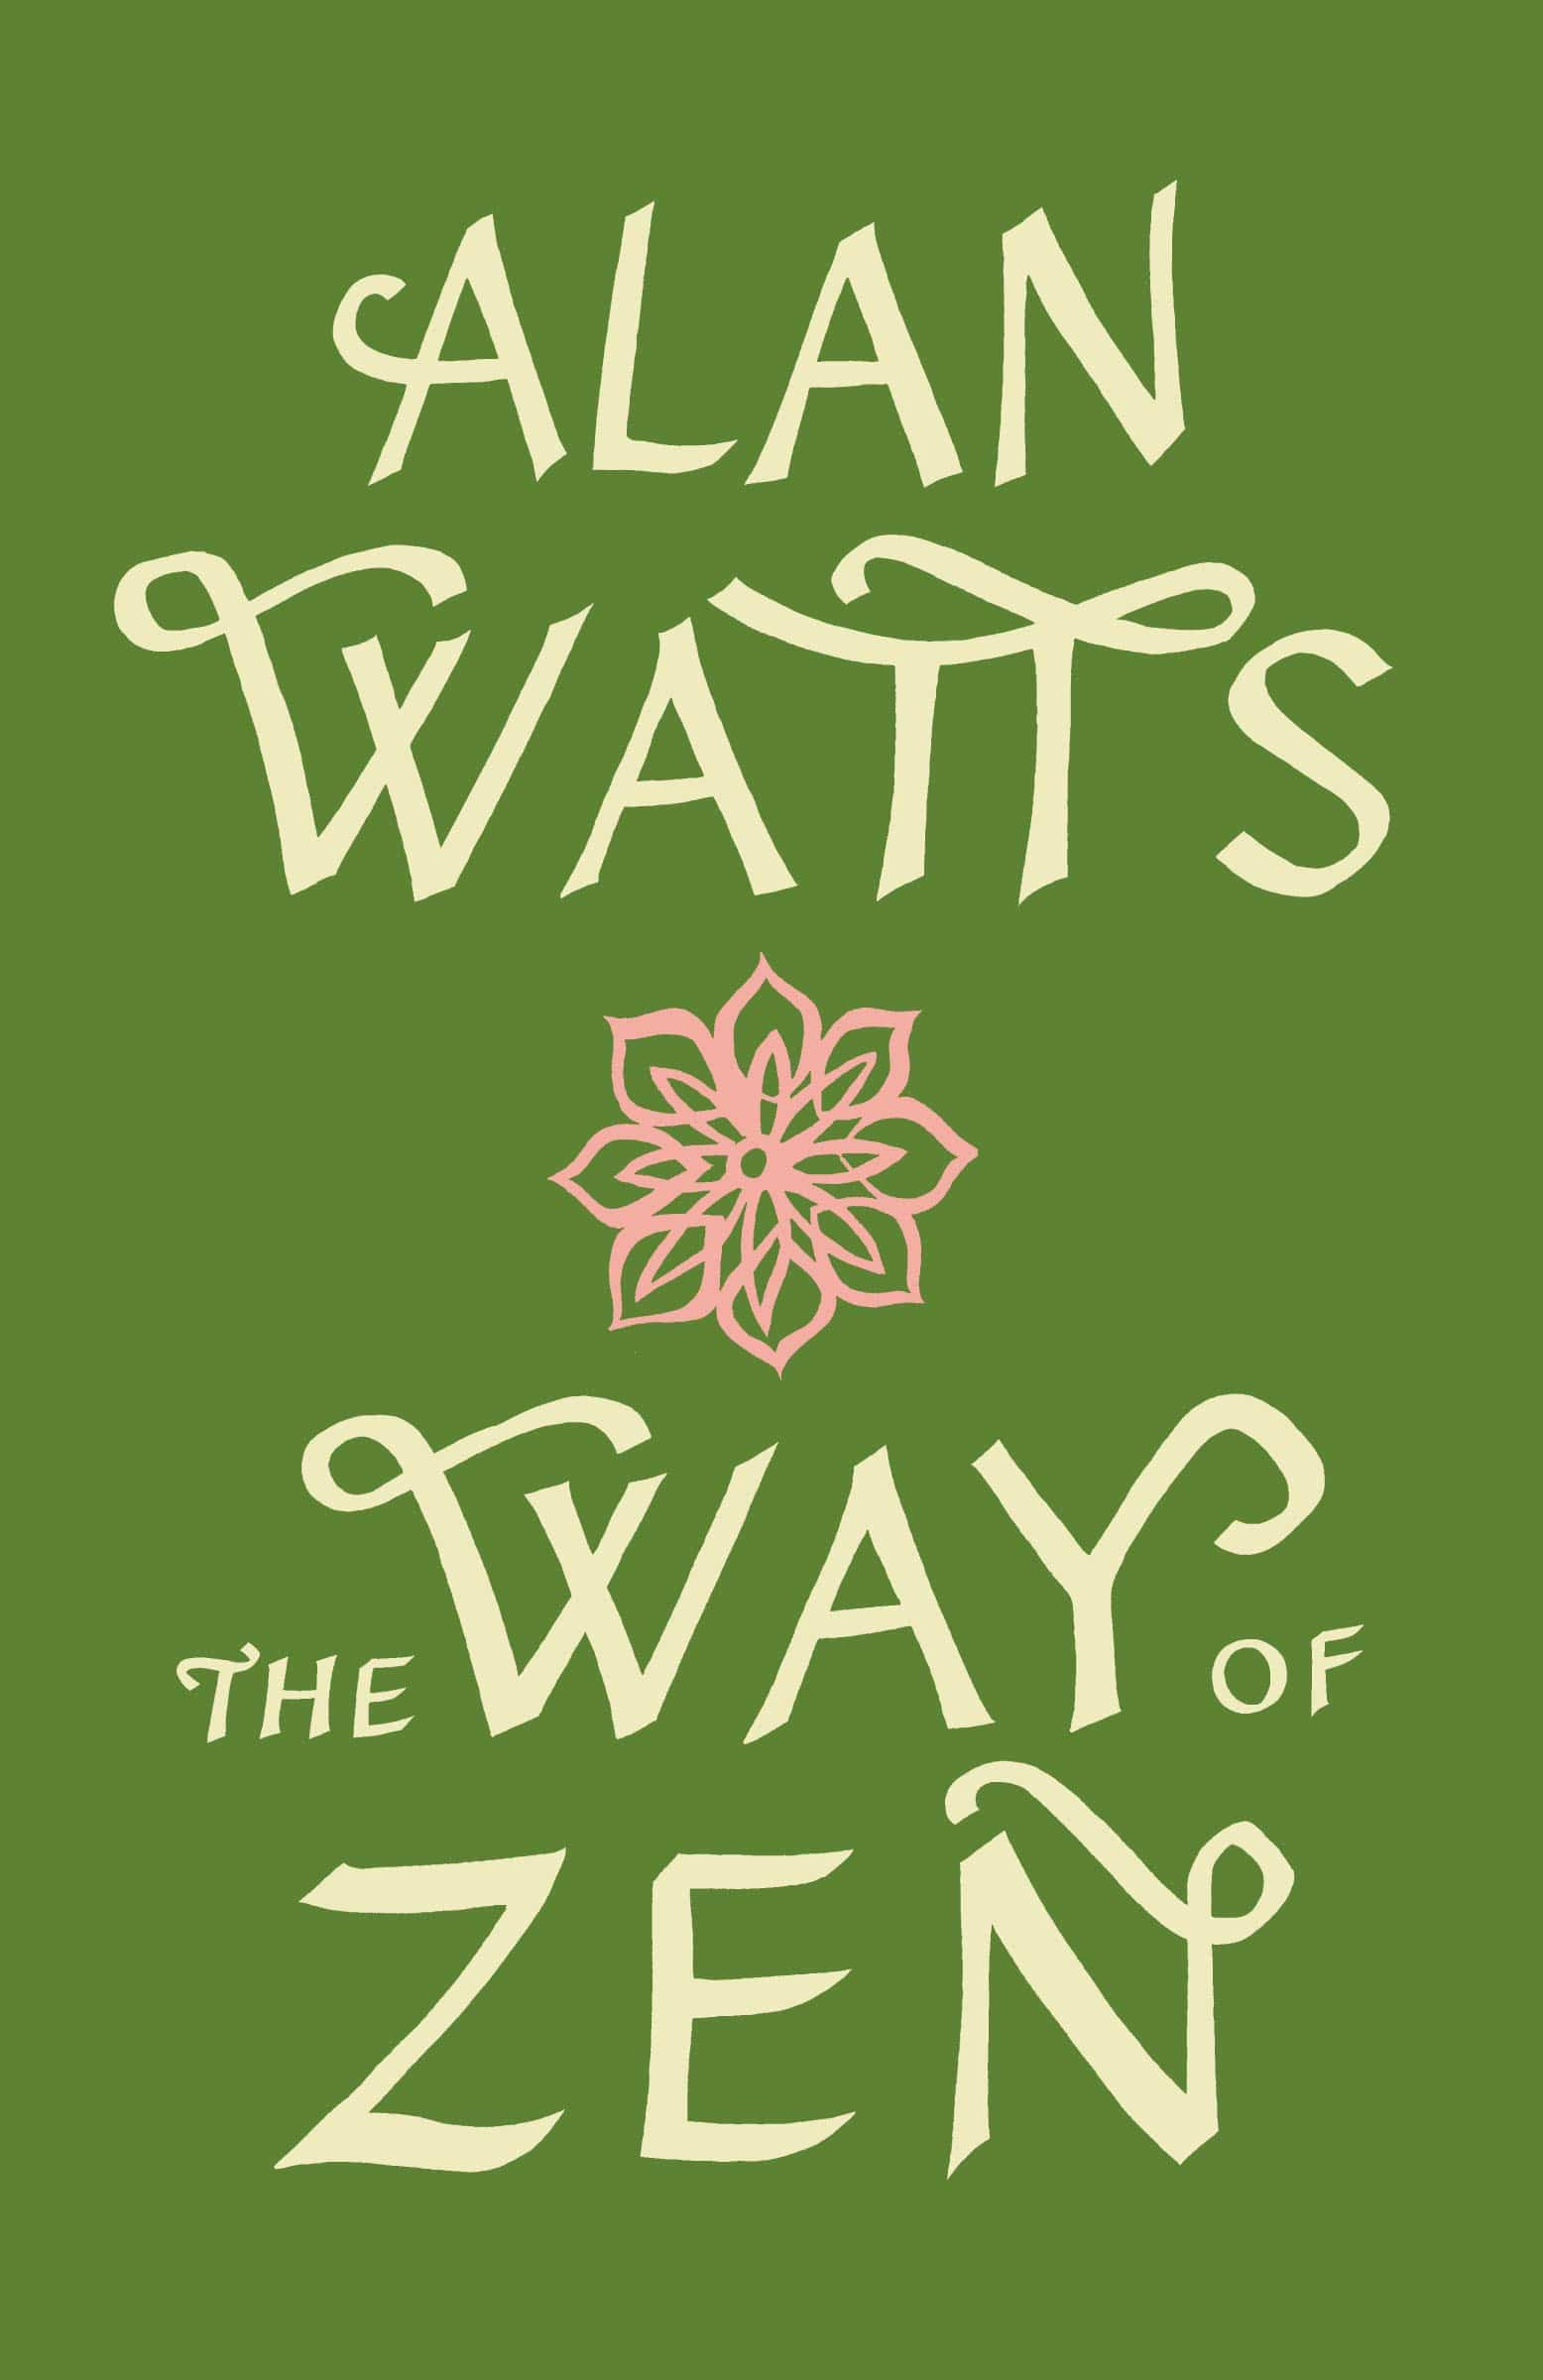 The cover of The Way of Zen